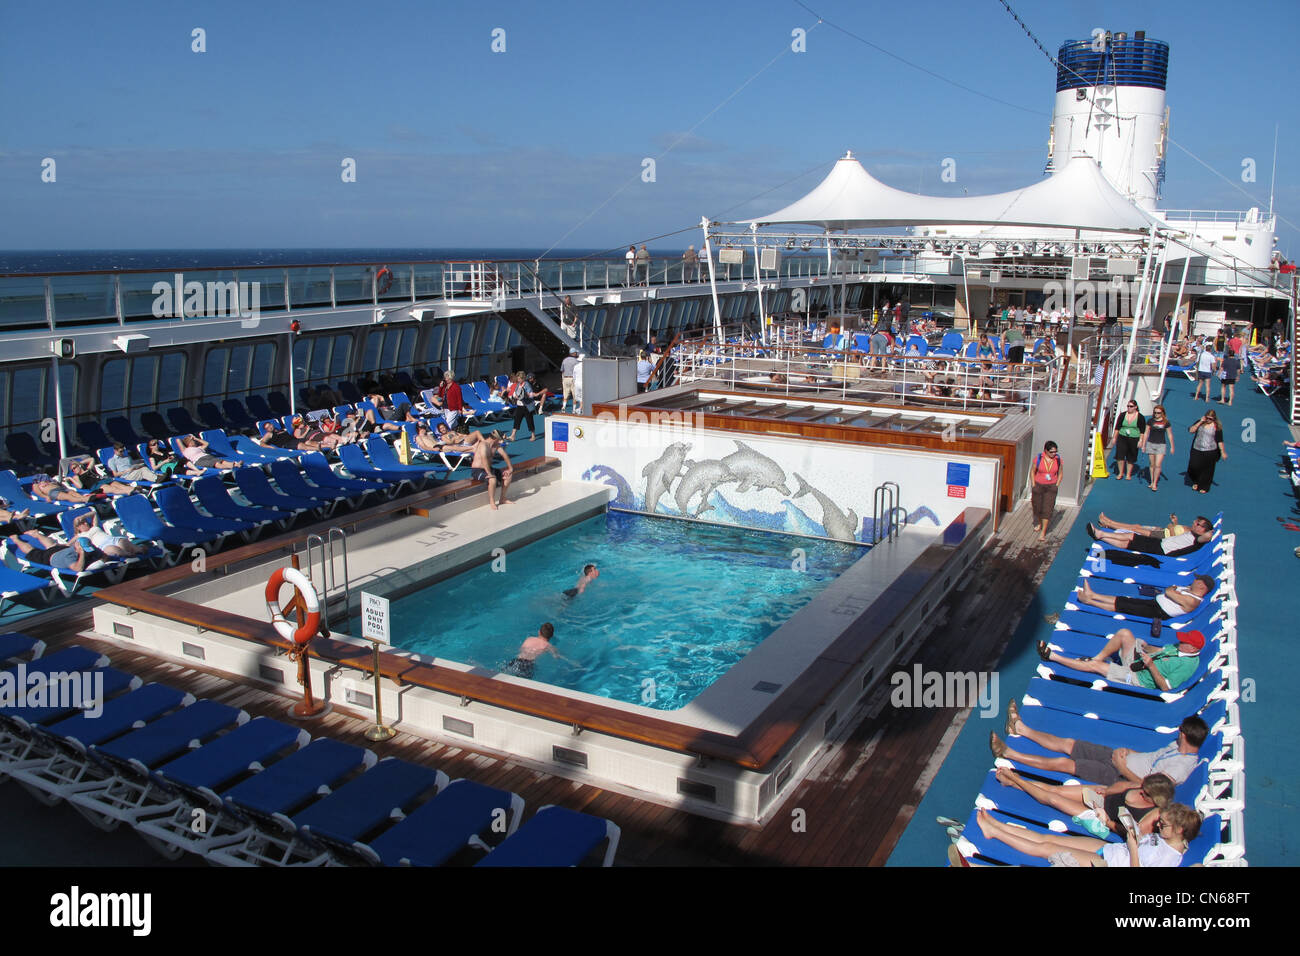 P And O Cruise Ship Pacific Dawn Stock Photo Alamy - Cruise ship dawn